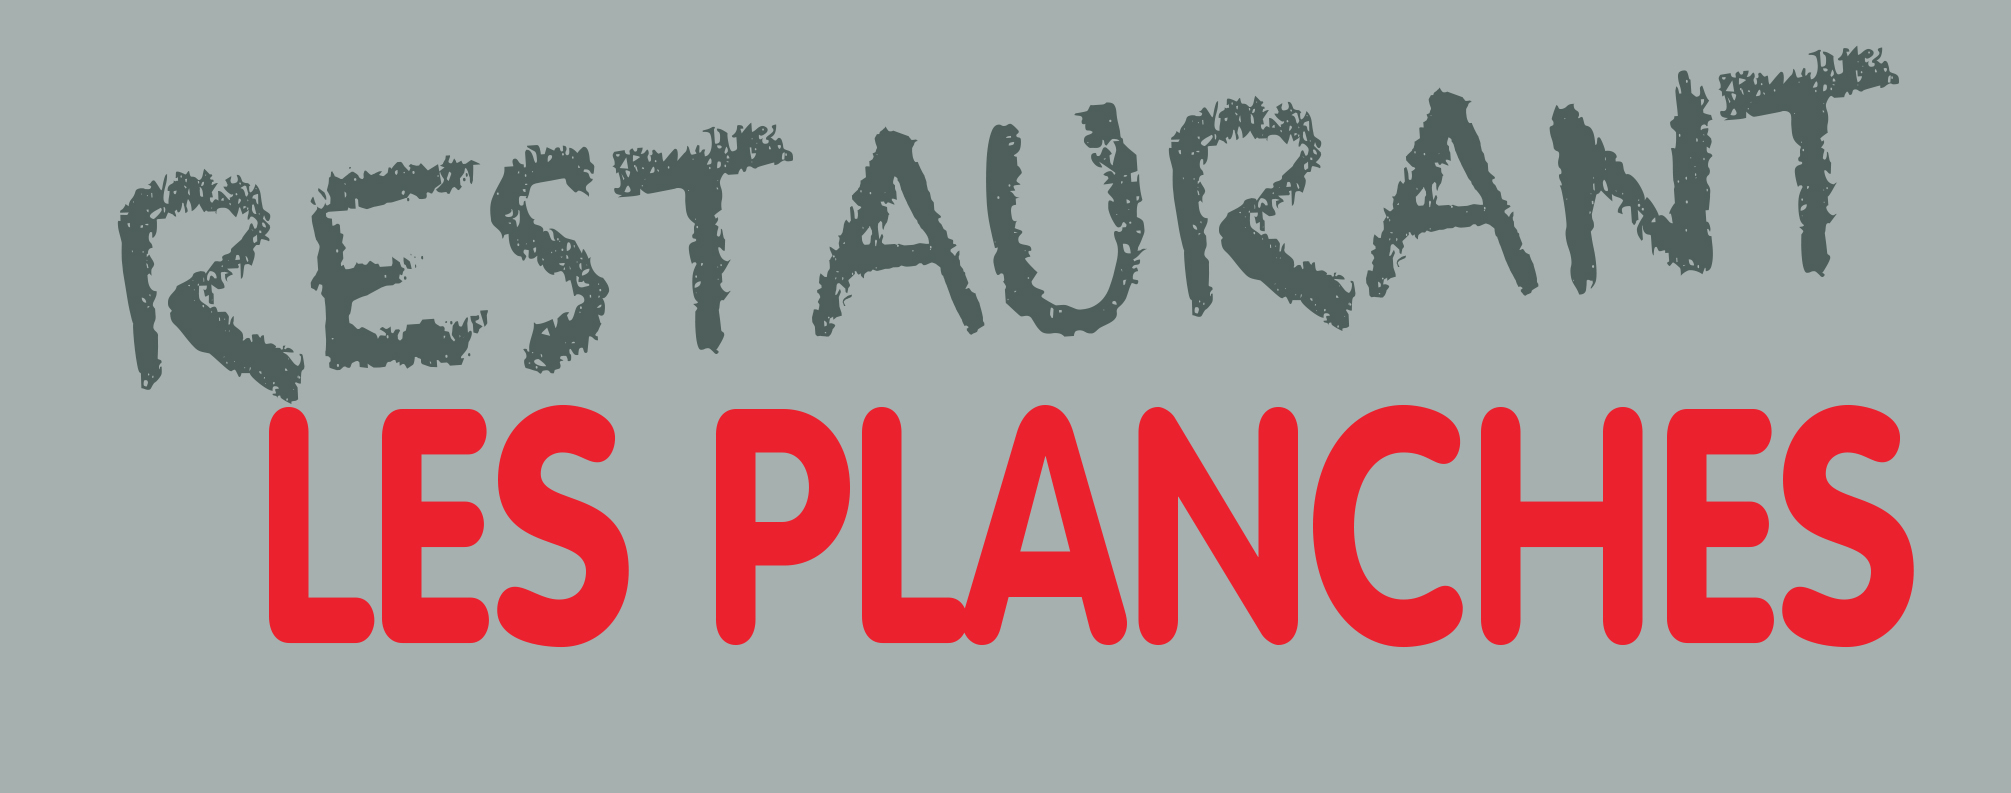 NOS SPONSORS planches